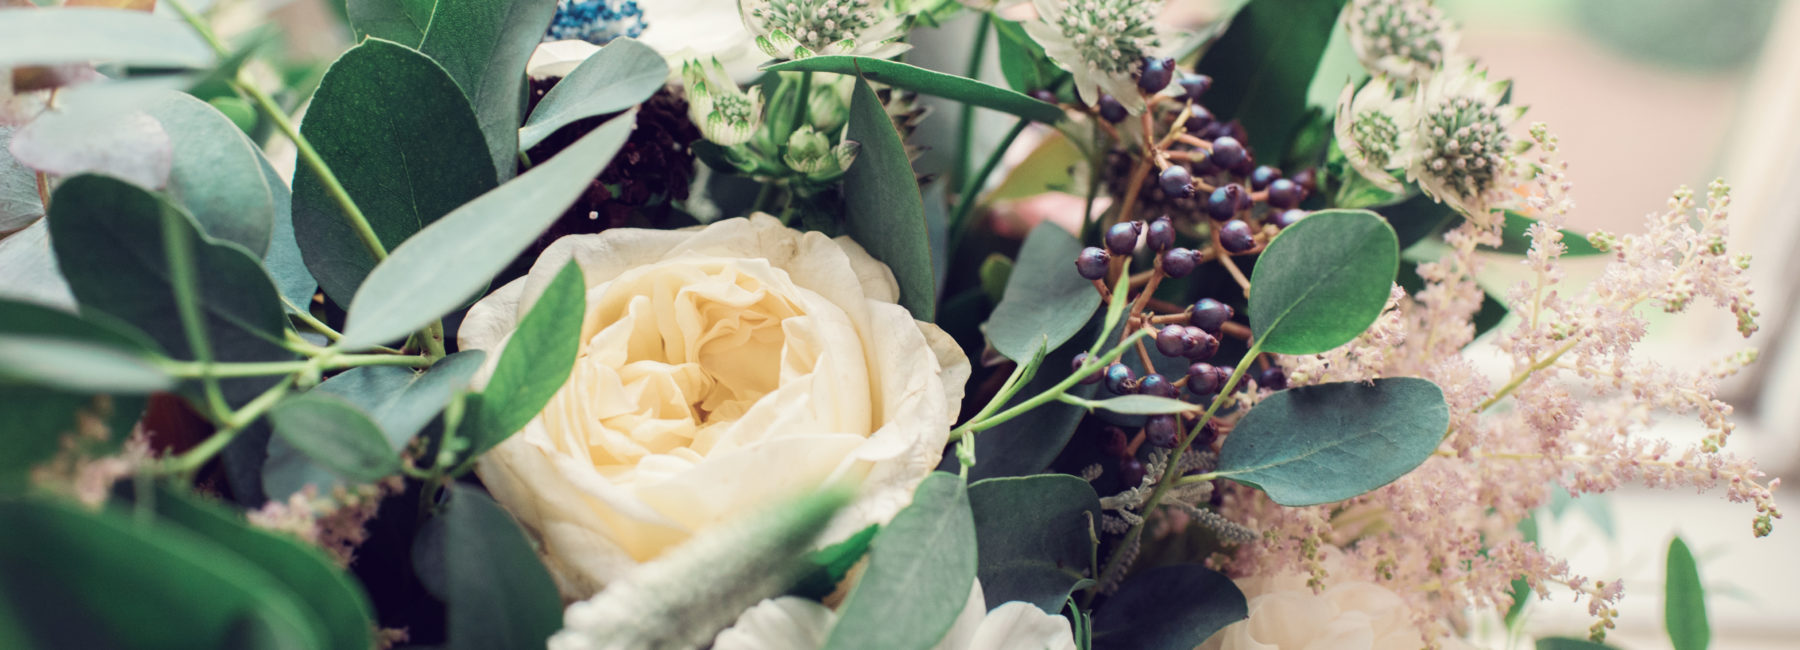 A bouquet of cream flowers and muted green foliage.